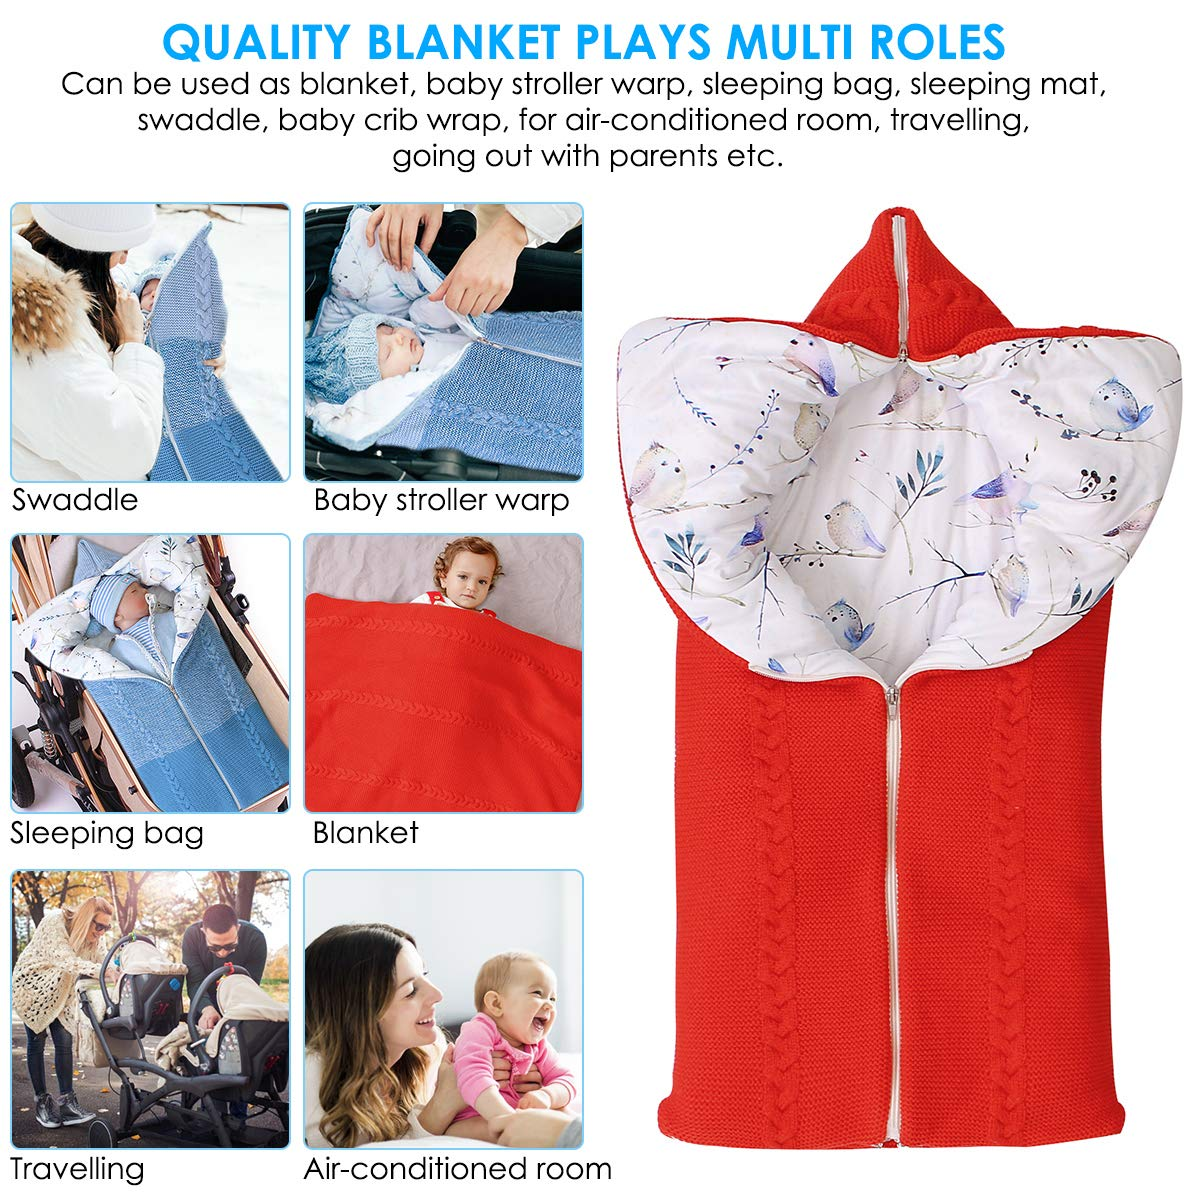 Drizzle Baby Swaddle Blanket Indoor Outdoor Flannel Anti Kick Baby Sleeping Bag Sack Waterproof Warm for Infant Newborn Boys Girls 0-36 Months Wearable Blanket Baby Quilt Pink